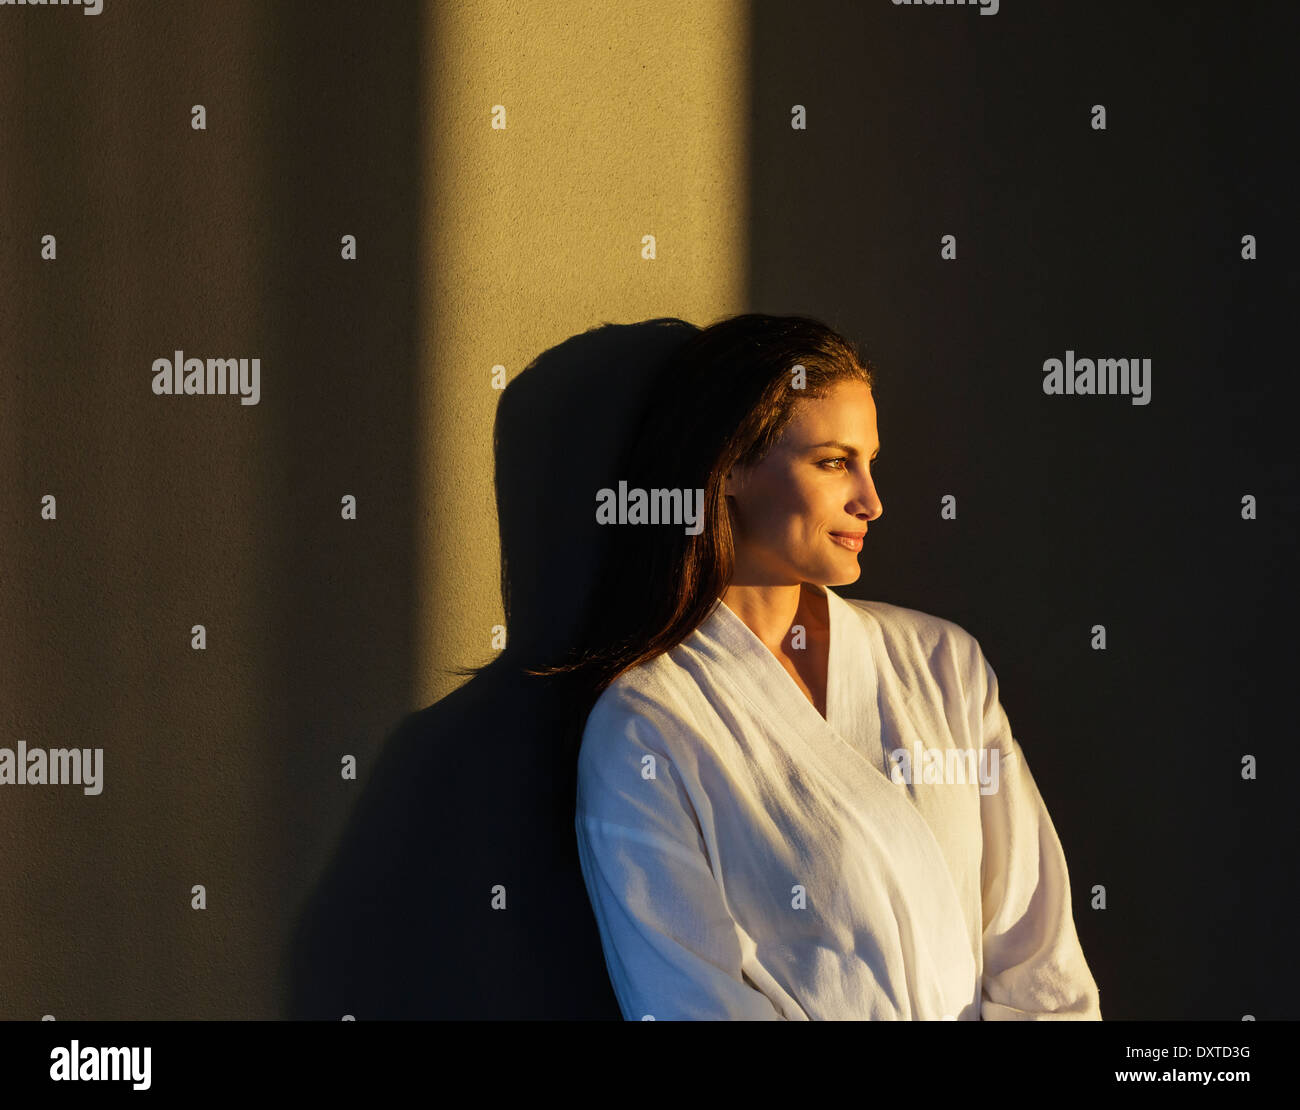 Pensive woman in bathrobe Photo Stock